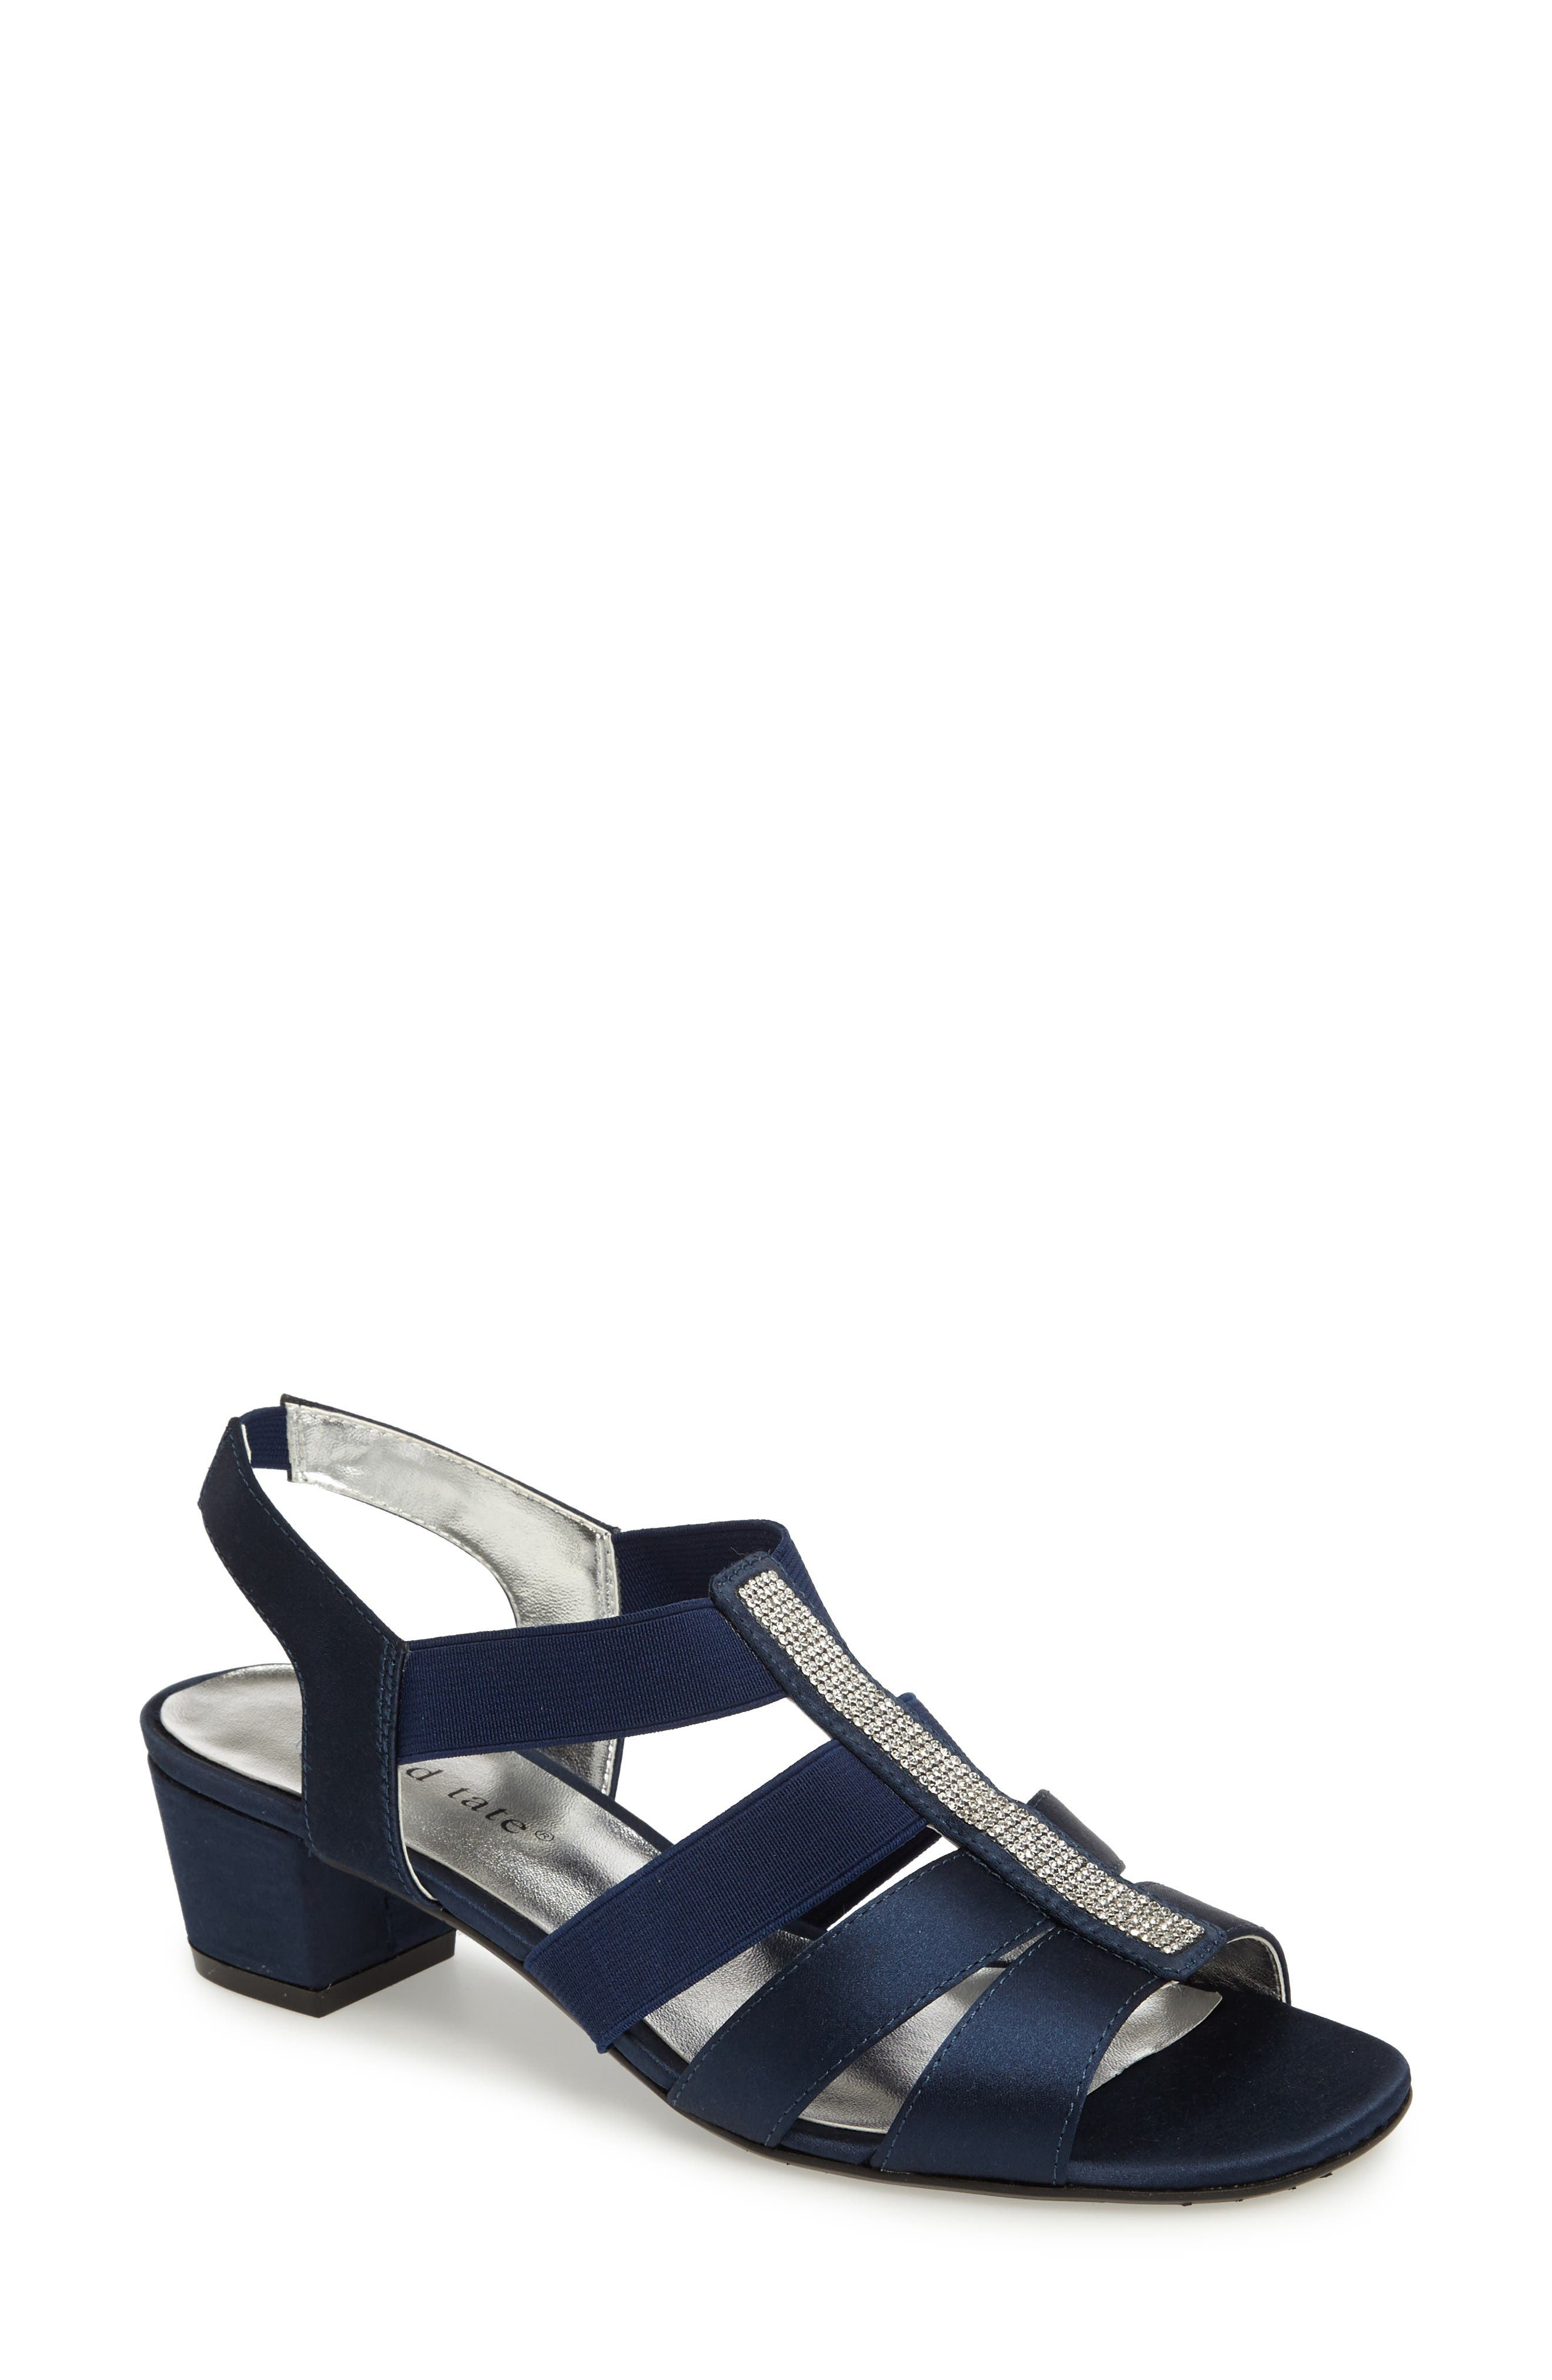 Main Image - David Tate Eve Embellished Sandal (Women)